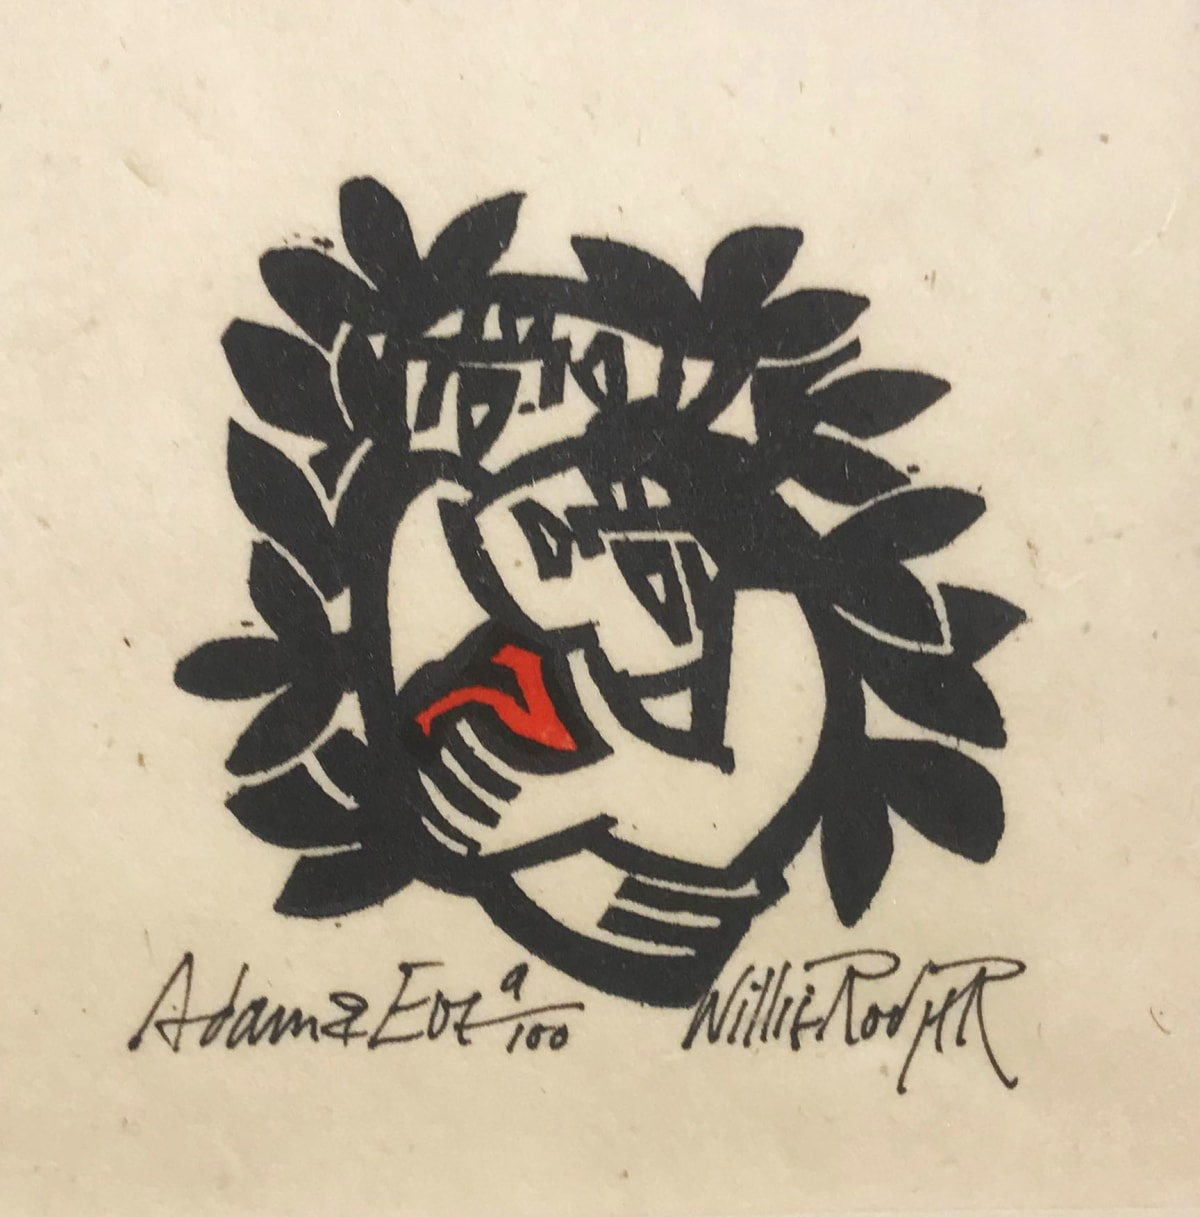 Willie Rodger RSA Adam and Eve, 1996 Linocut on paper 5.5 x 7 cm Edition of 100 plus 1 artist's proof